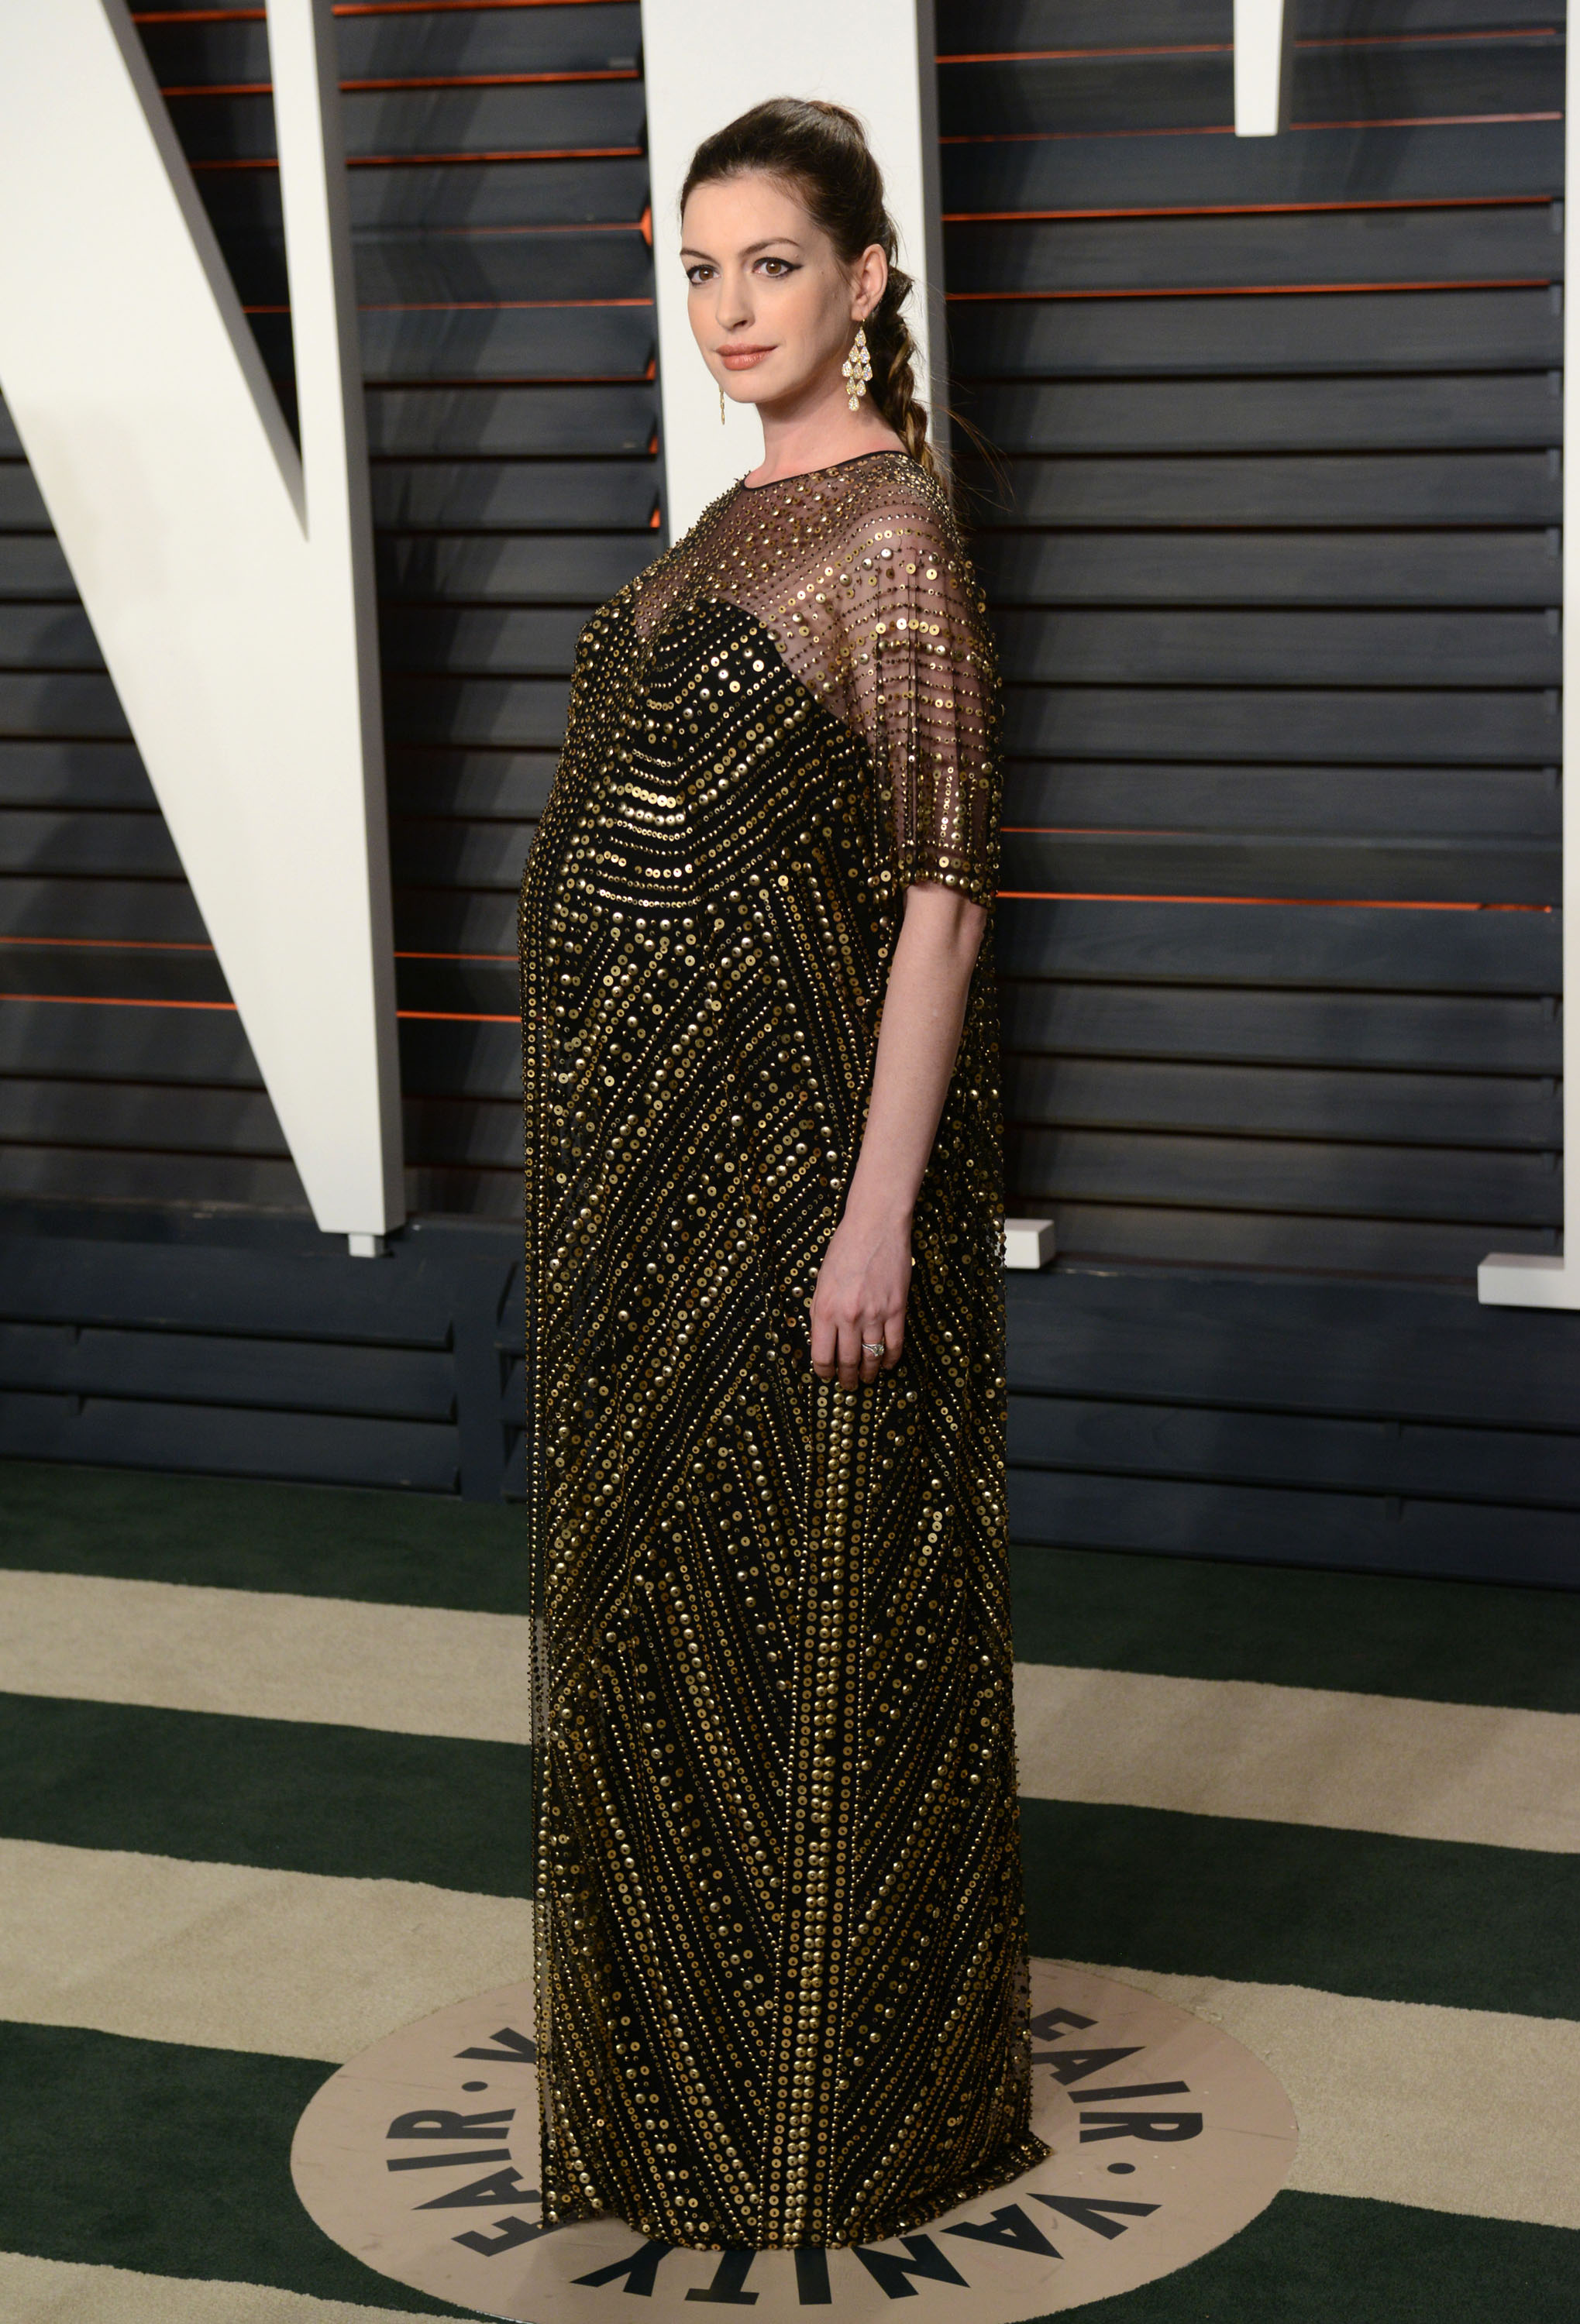 Oscars Well Played: Anne Hathaway in Naeem Khan